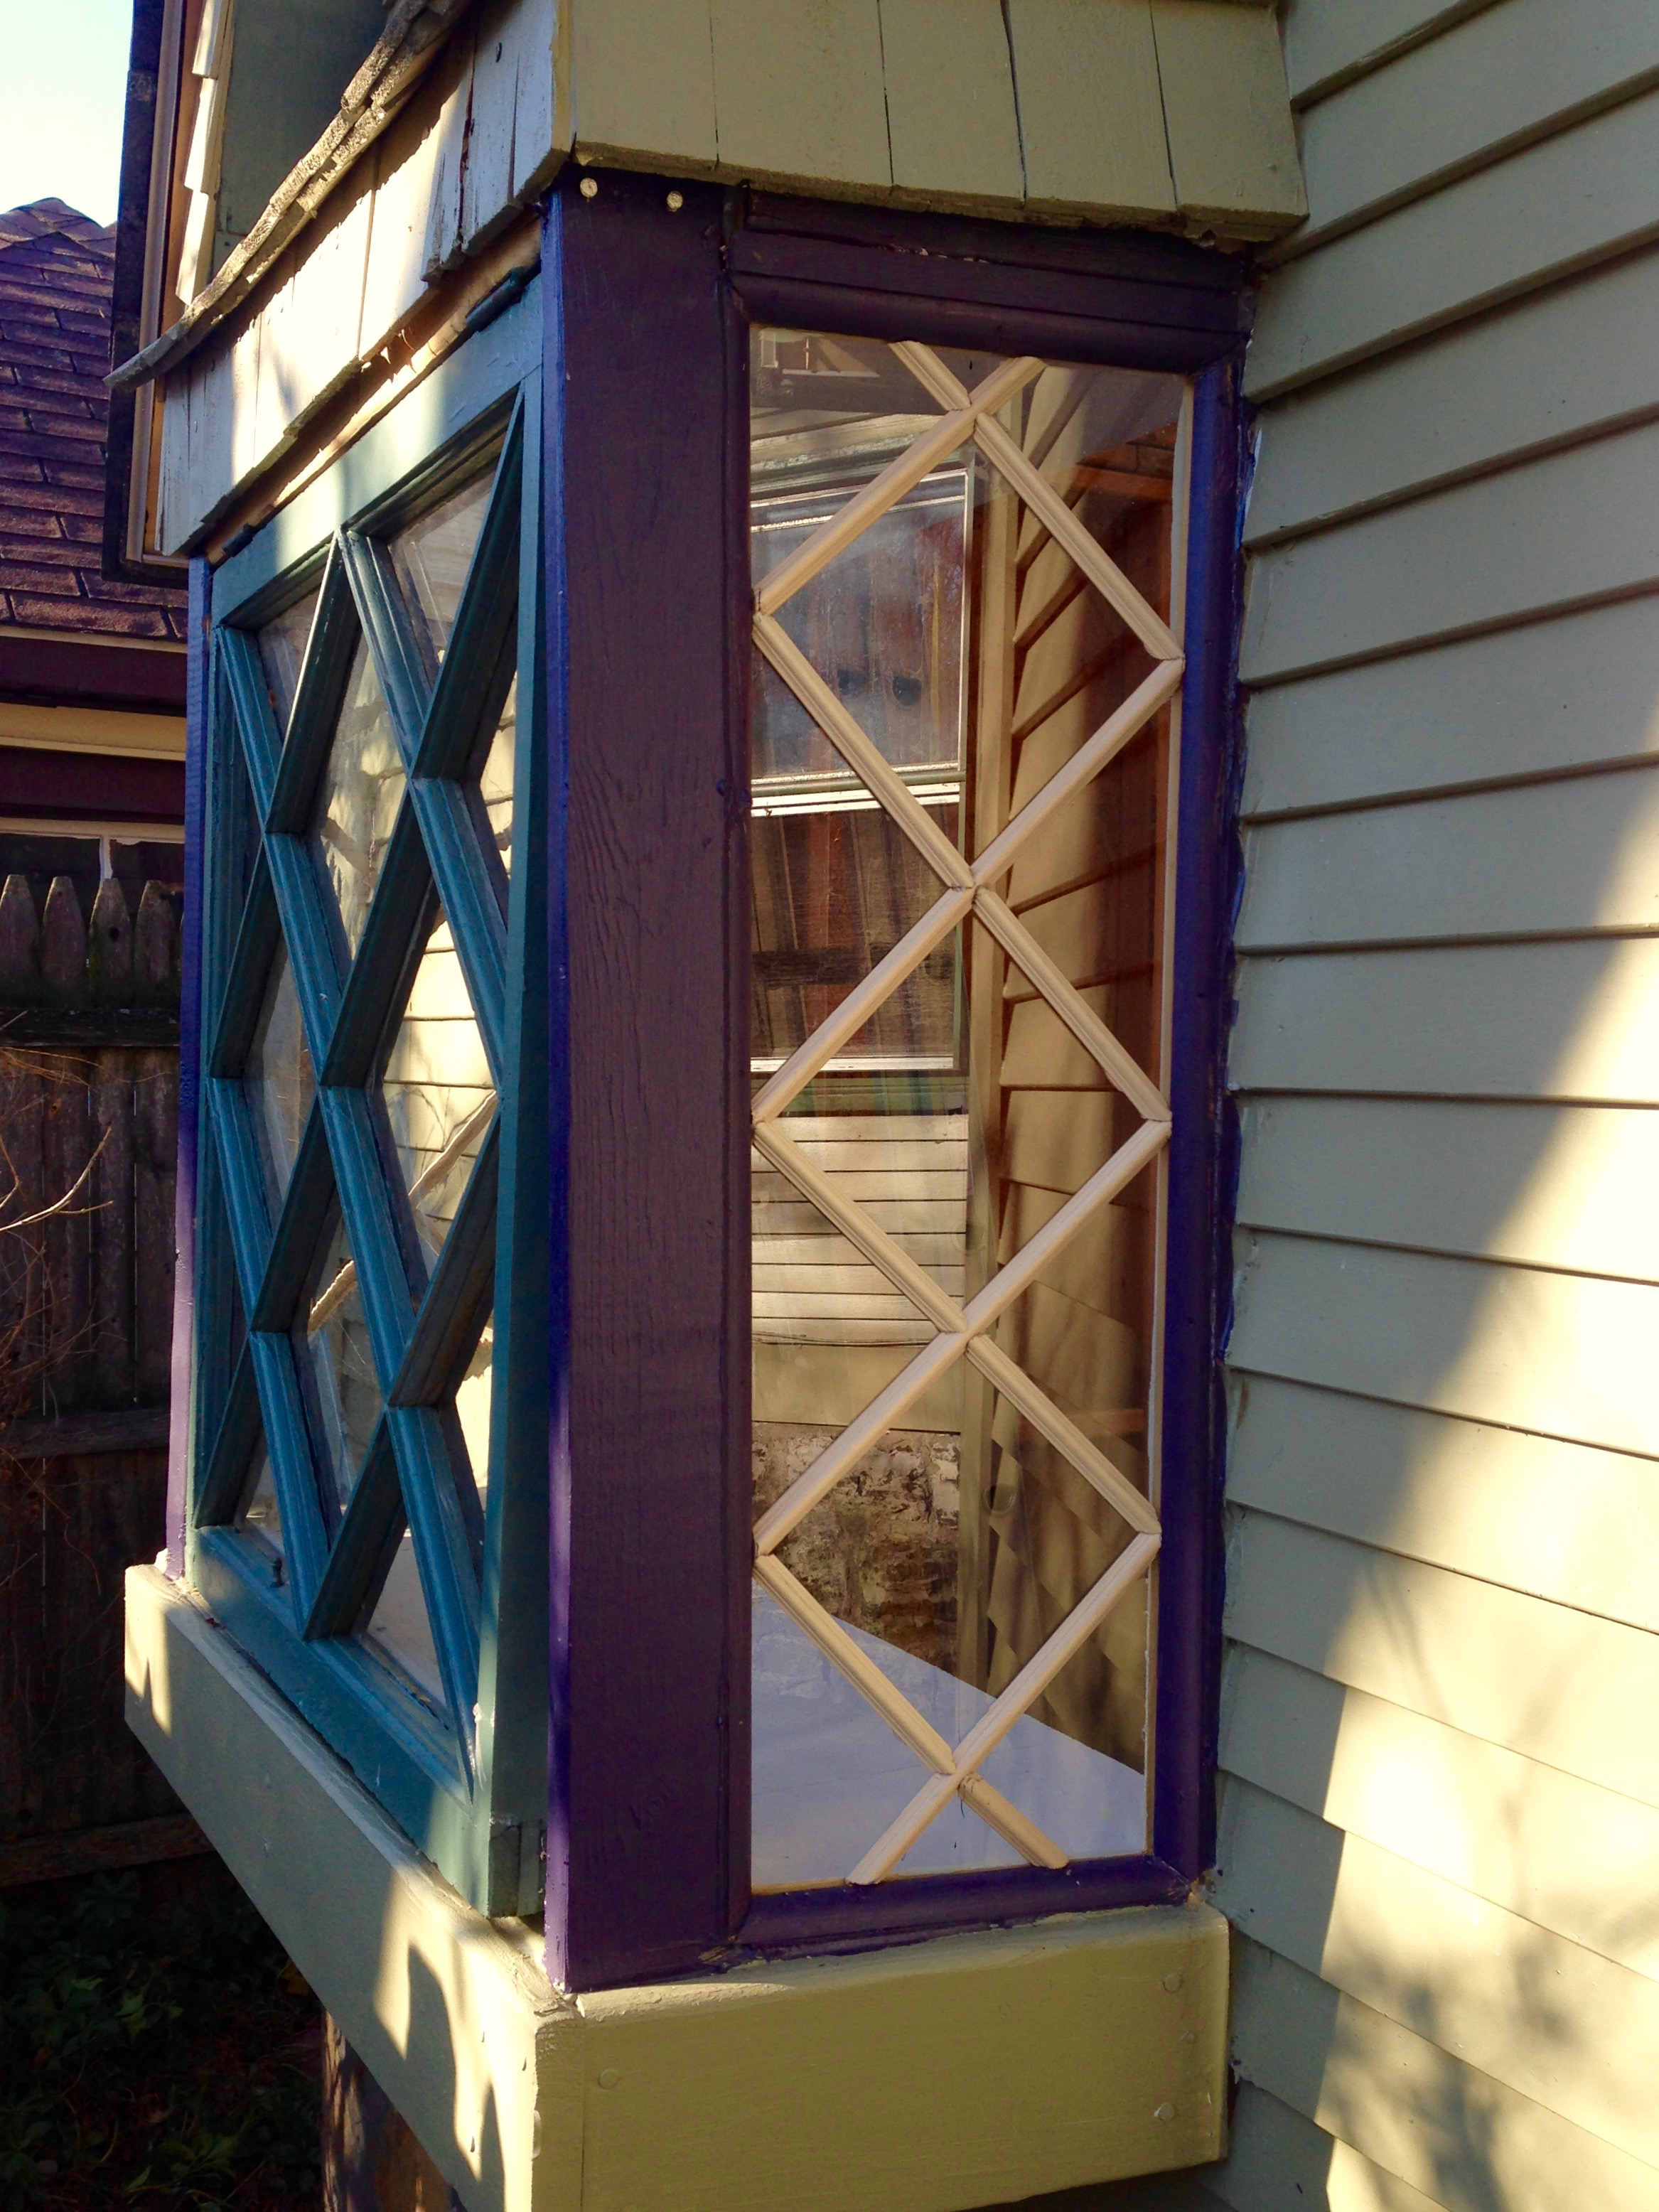 sidelight, complete with diamond-shaped mullions, on a bumped-out bay window for the shed.